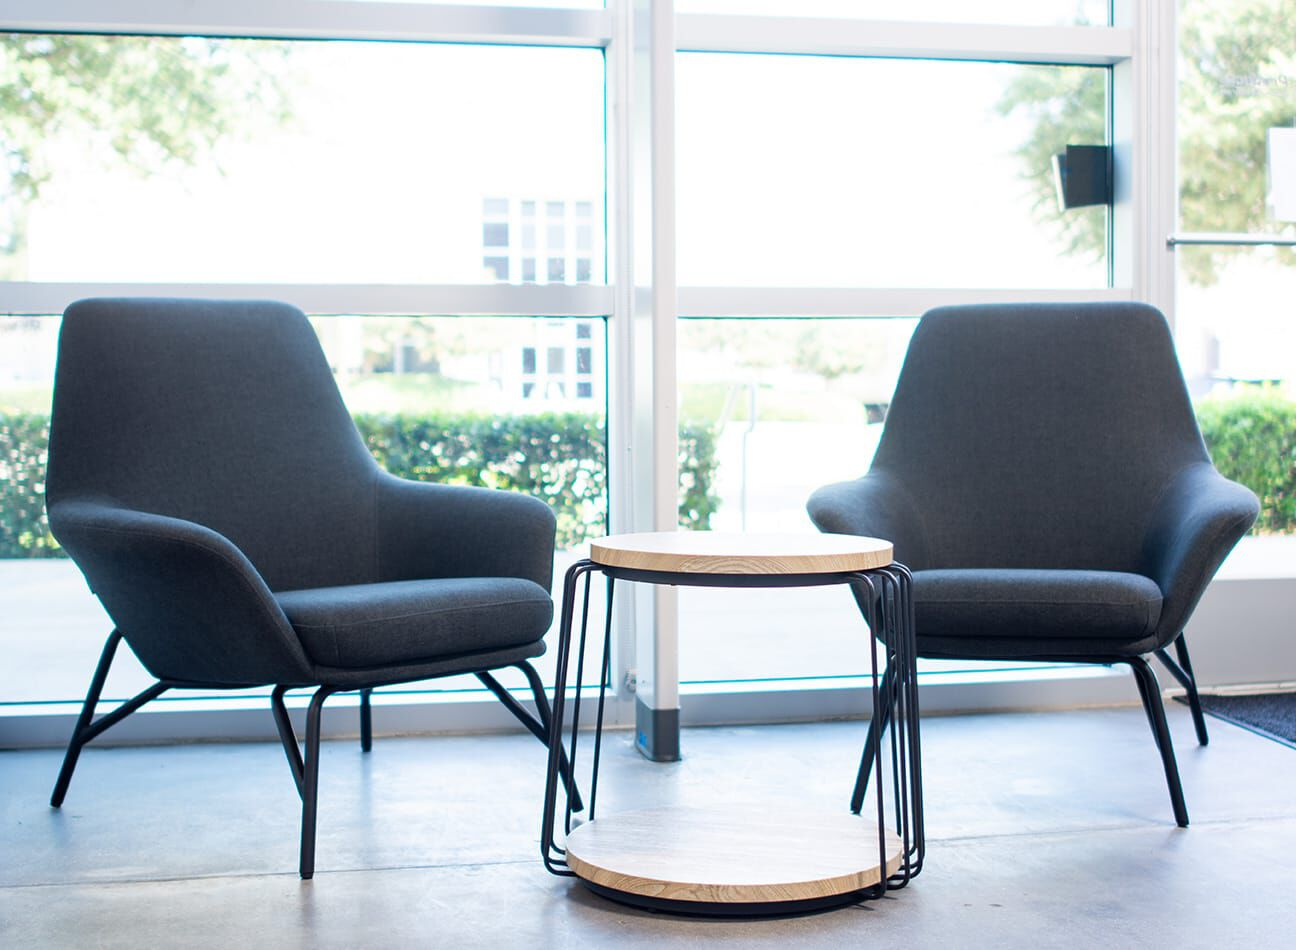 vari collaborative meeting furniture in the duraserv office  image